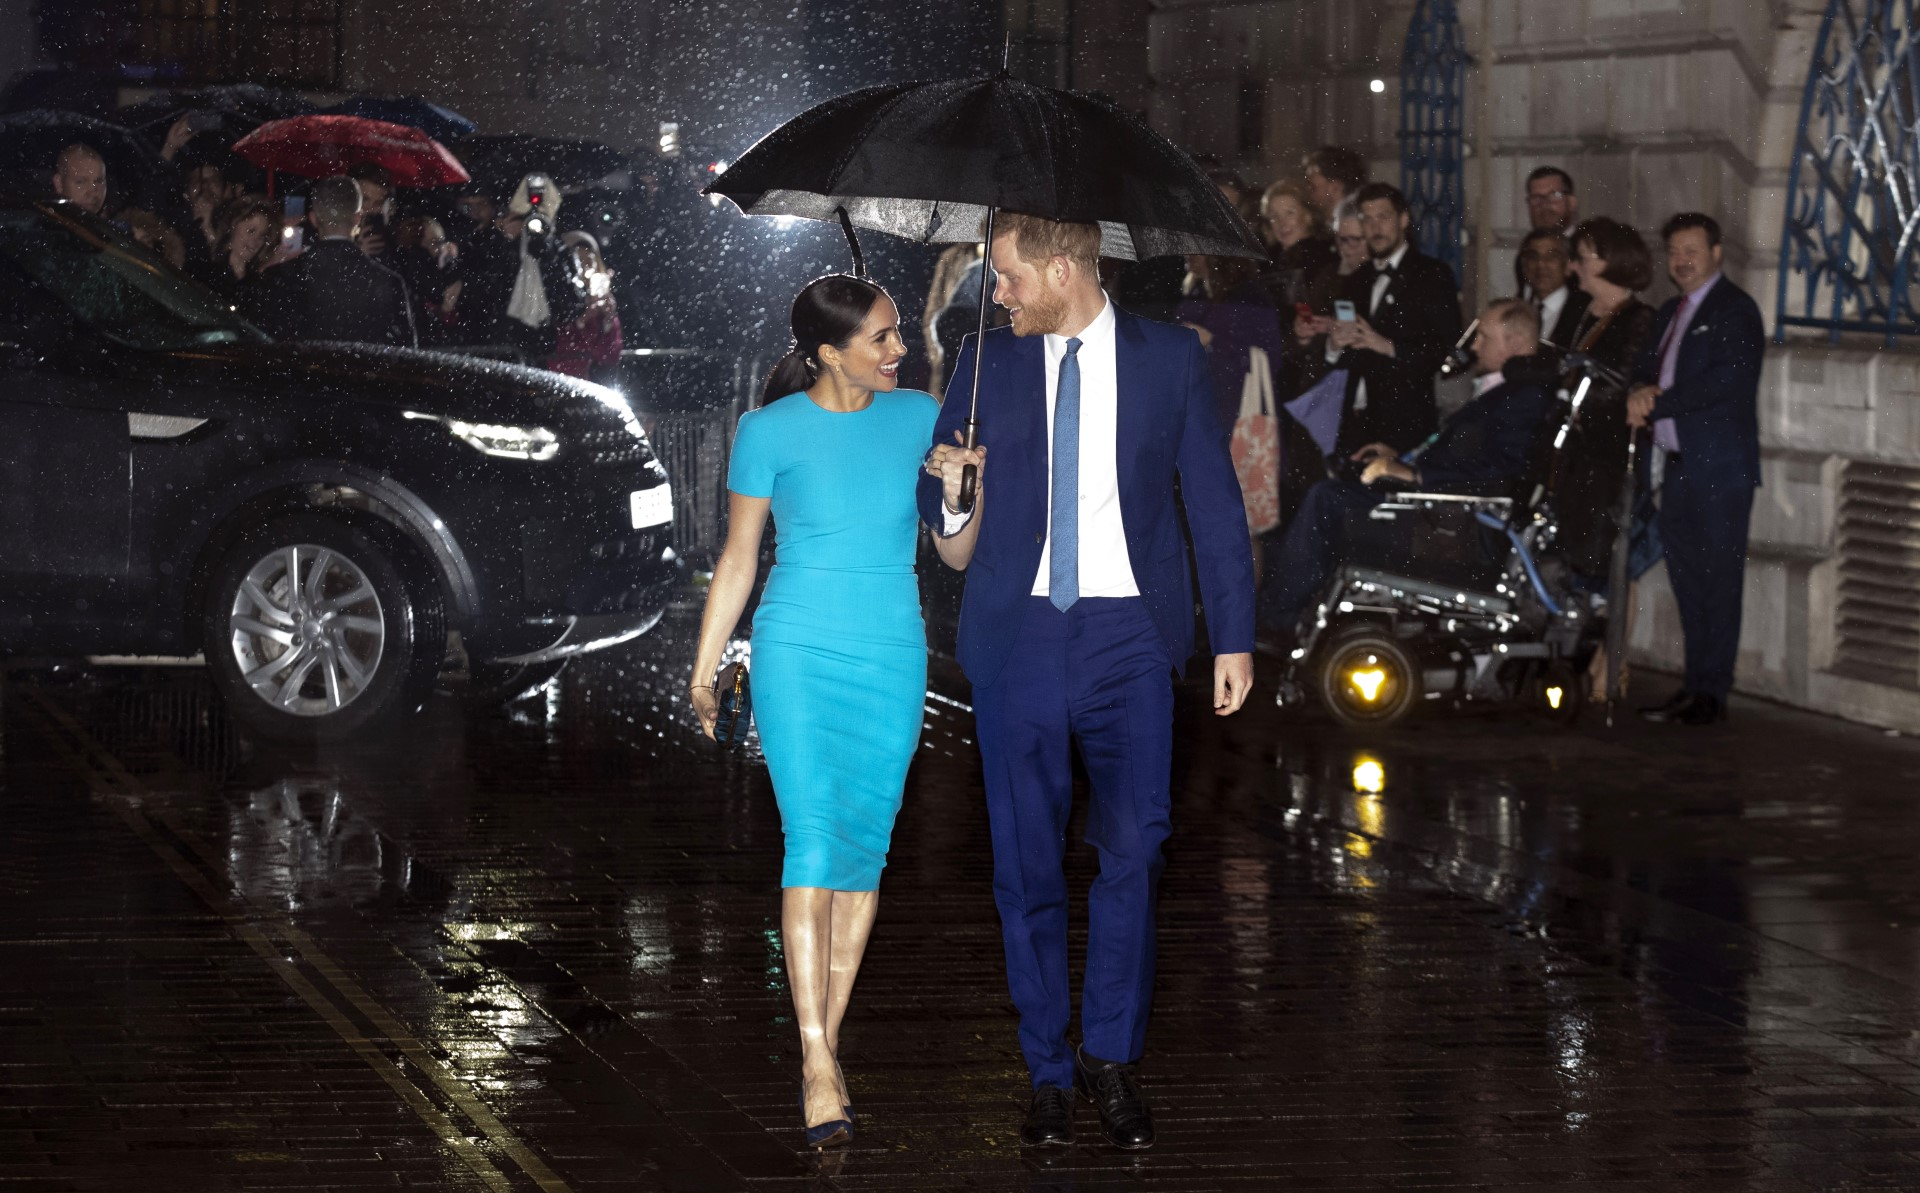 Dumping British tabloids, Harry and Meghan complete their Royal Exit